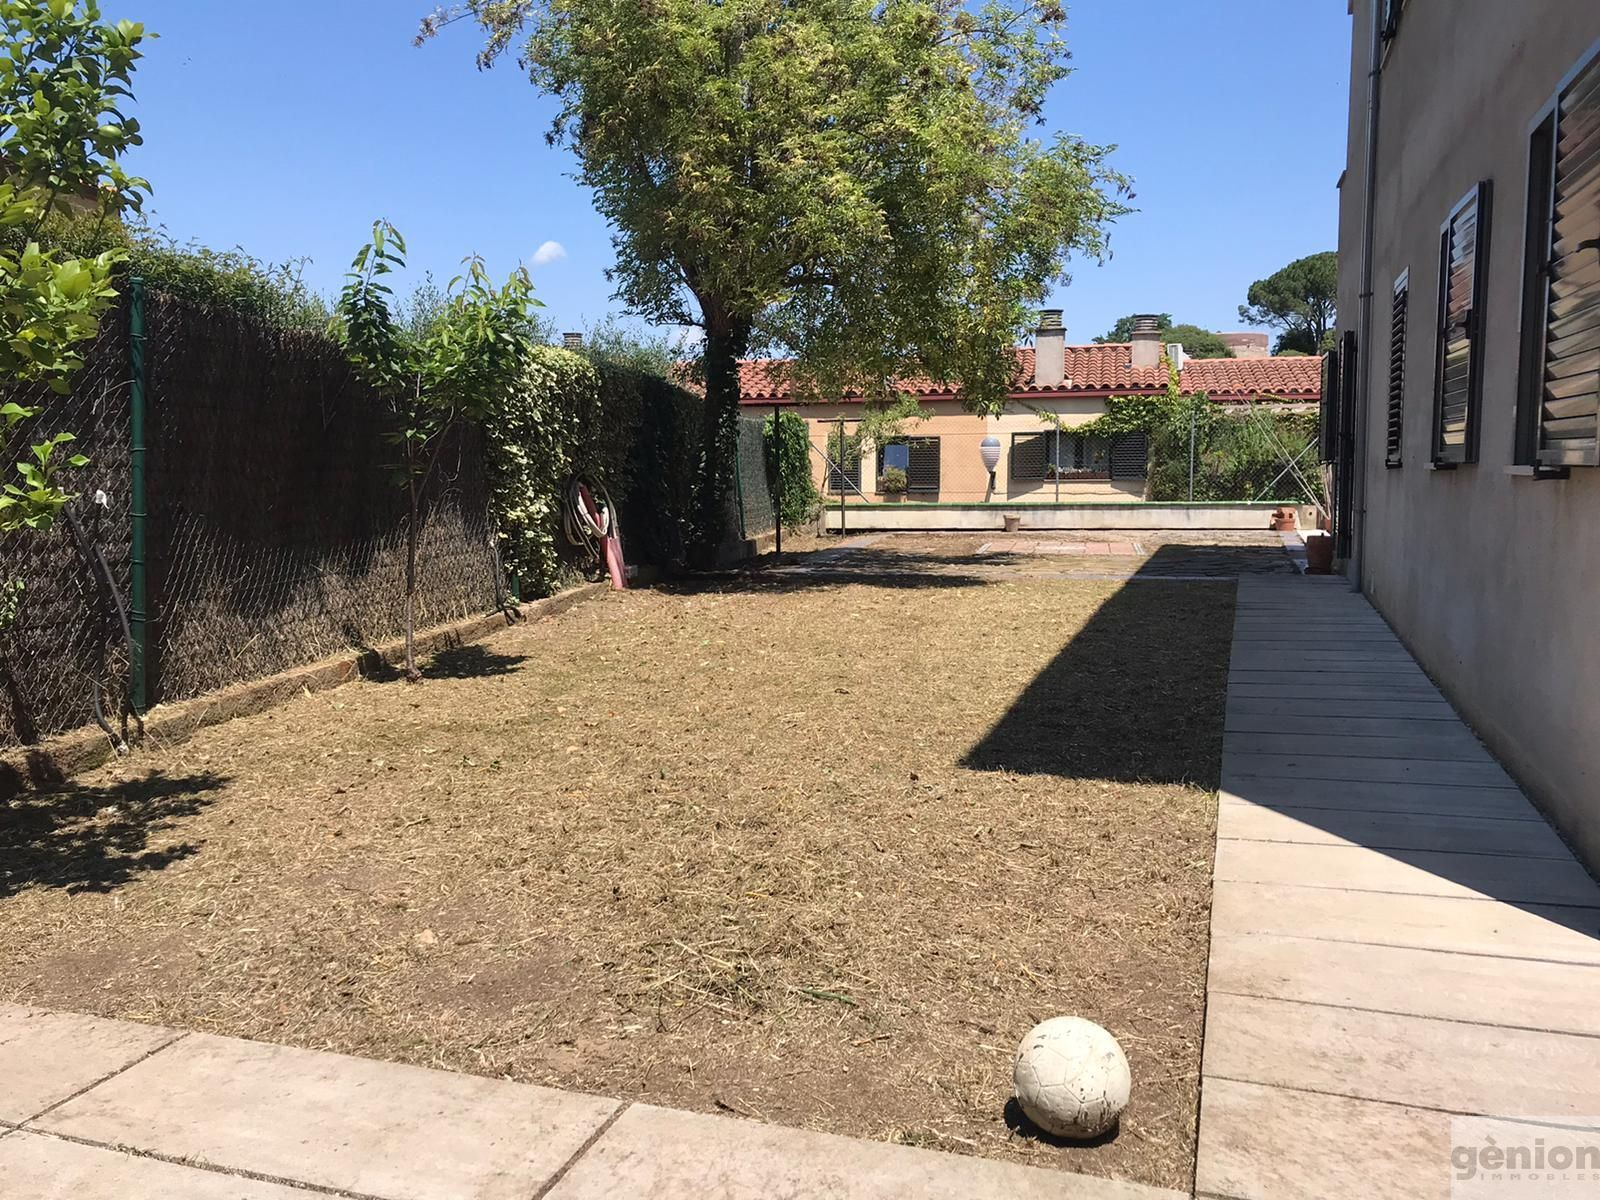 DETACHED HOUSE IN LES PEDRERES, GIRONA. 493 m² PLOT WITH A BUILT SURFACE AREA OF 279 m²